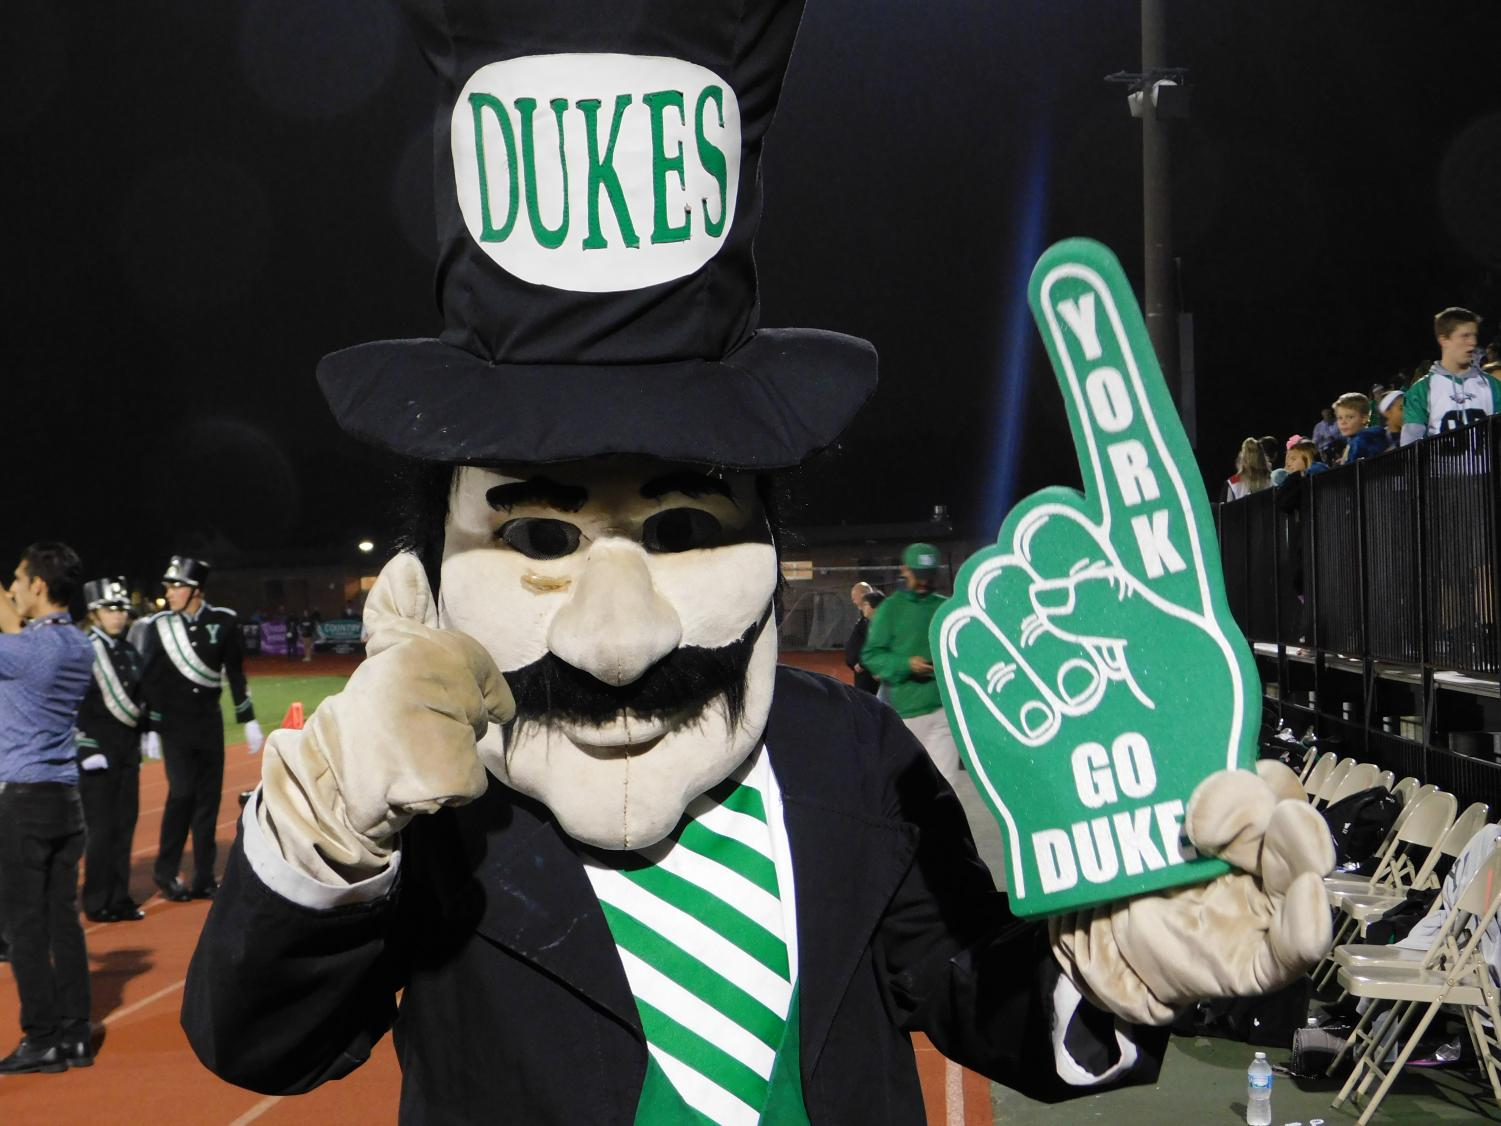 York's beloved Duke visited students in the stands and cheered the team on from the field, giving the camera a thumbs up.